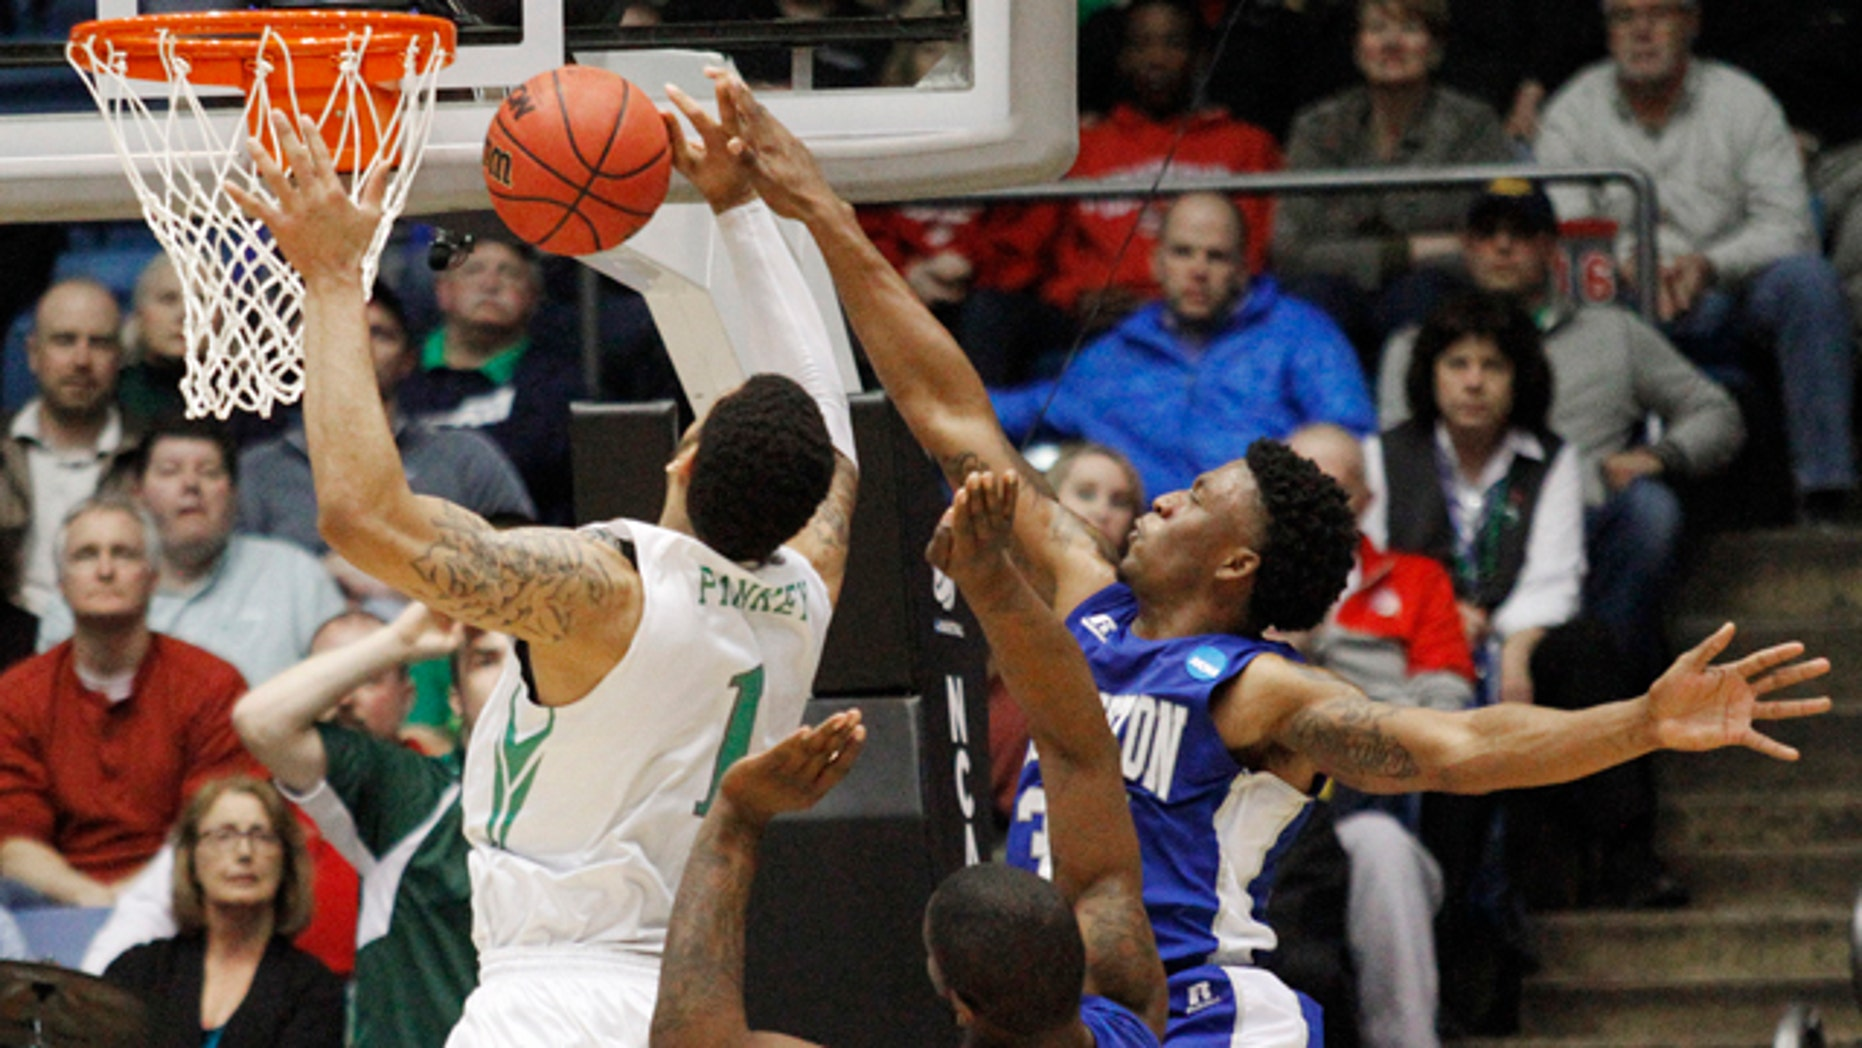 March 17, 2015: Hampton's Reginald Johnson, right, blocks a shot by Manhattan's Ashton Pankey (1) in the second half of a first round NCAA tournament basketball game Tuesday, March 17, 2015 in Dayton, Ohio. (AP Photo/Skip Peterson)